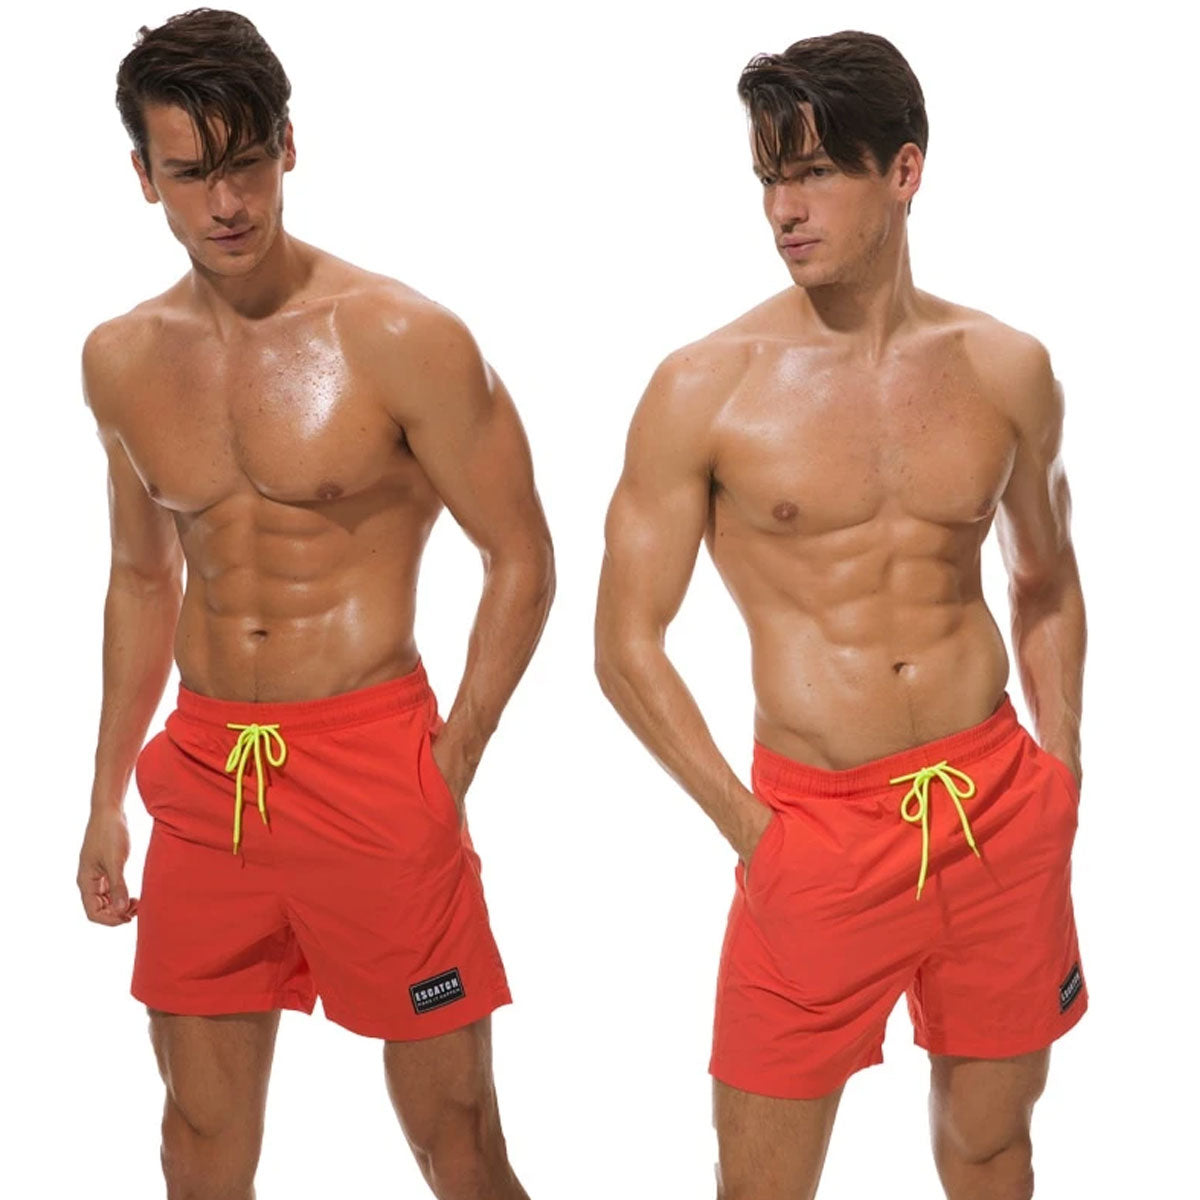 trunks swim shorts